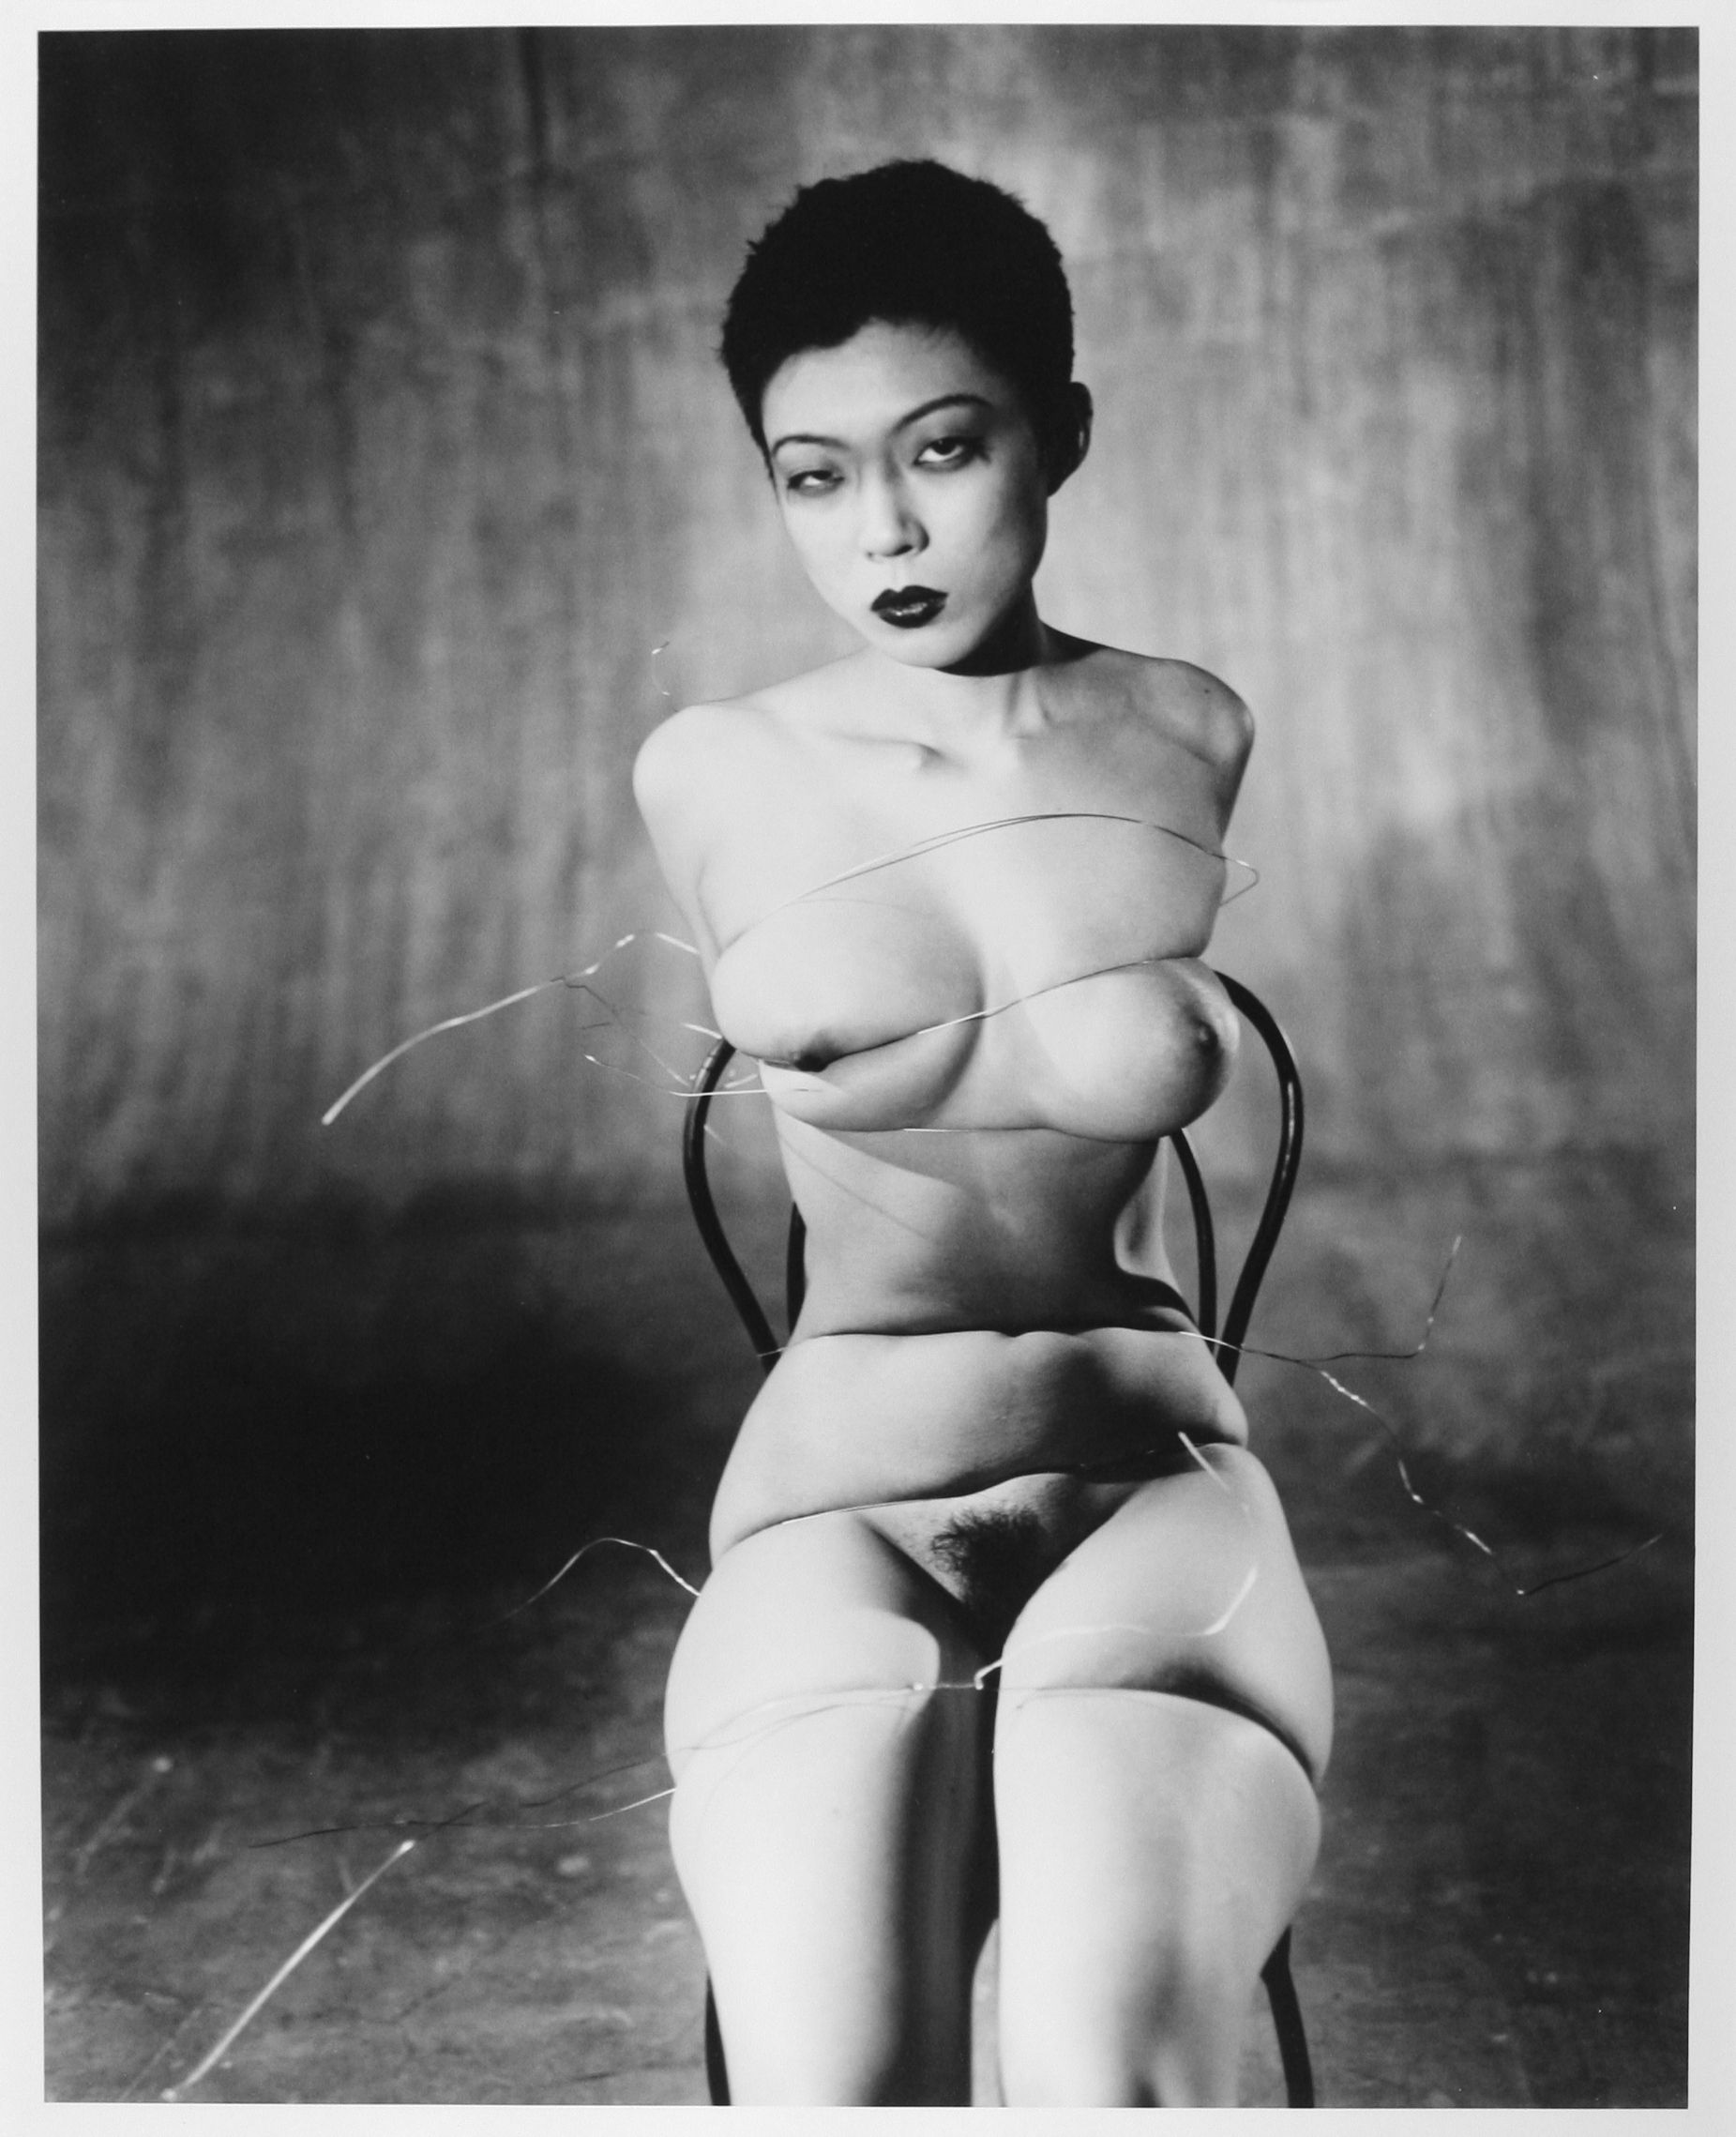 japan kinbaku 1000+ images about Shibari/Kinbaku on Pinterest | Yohji yamamoto, Ropes and Vintage man